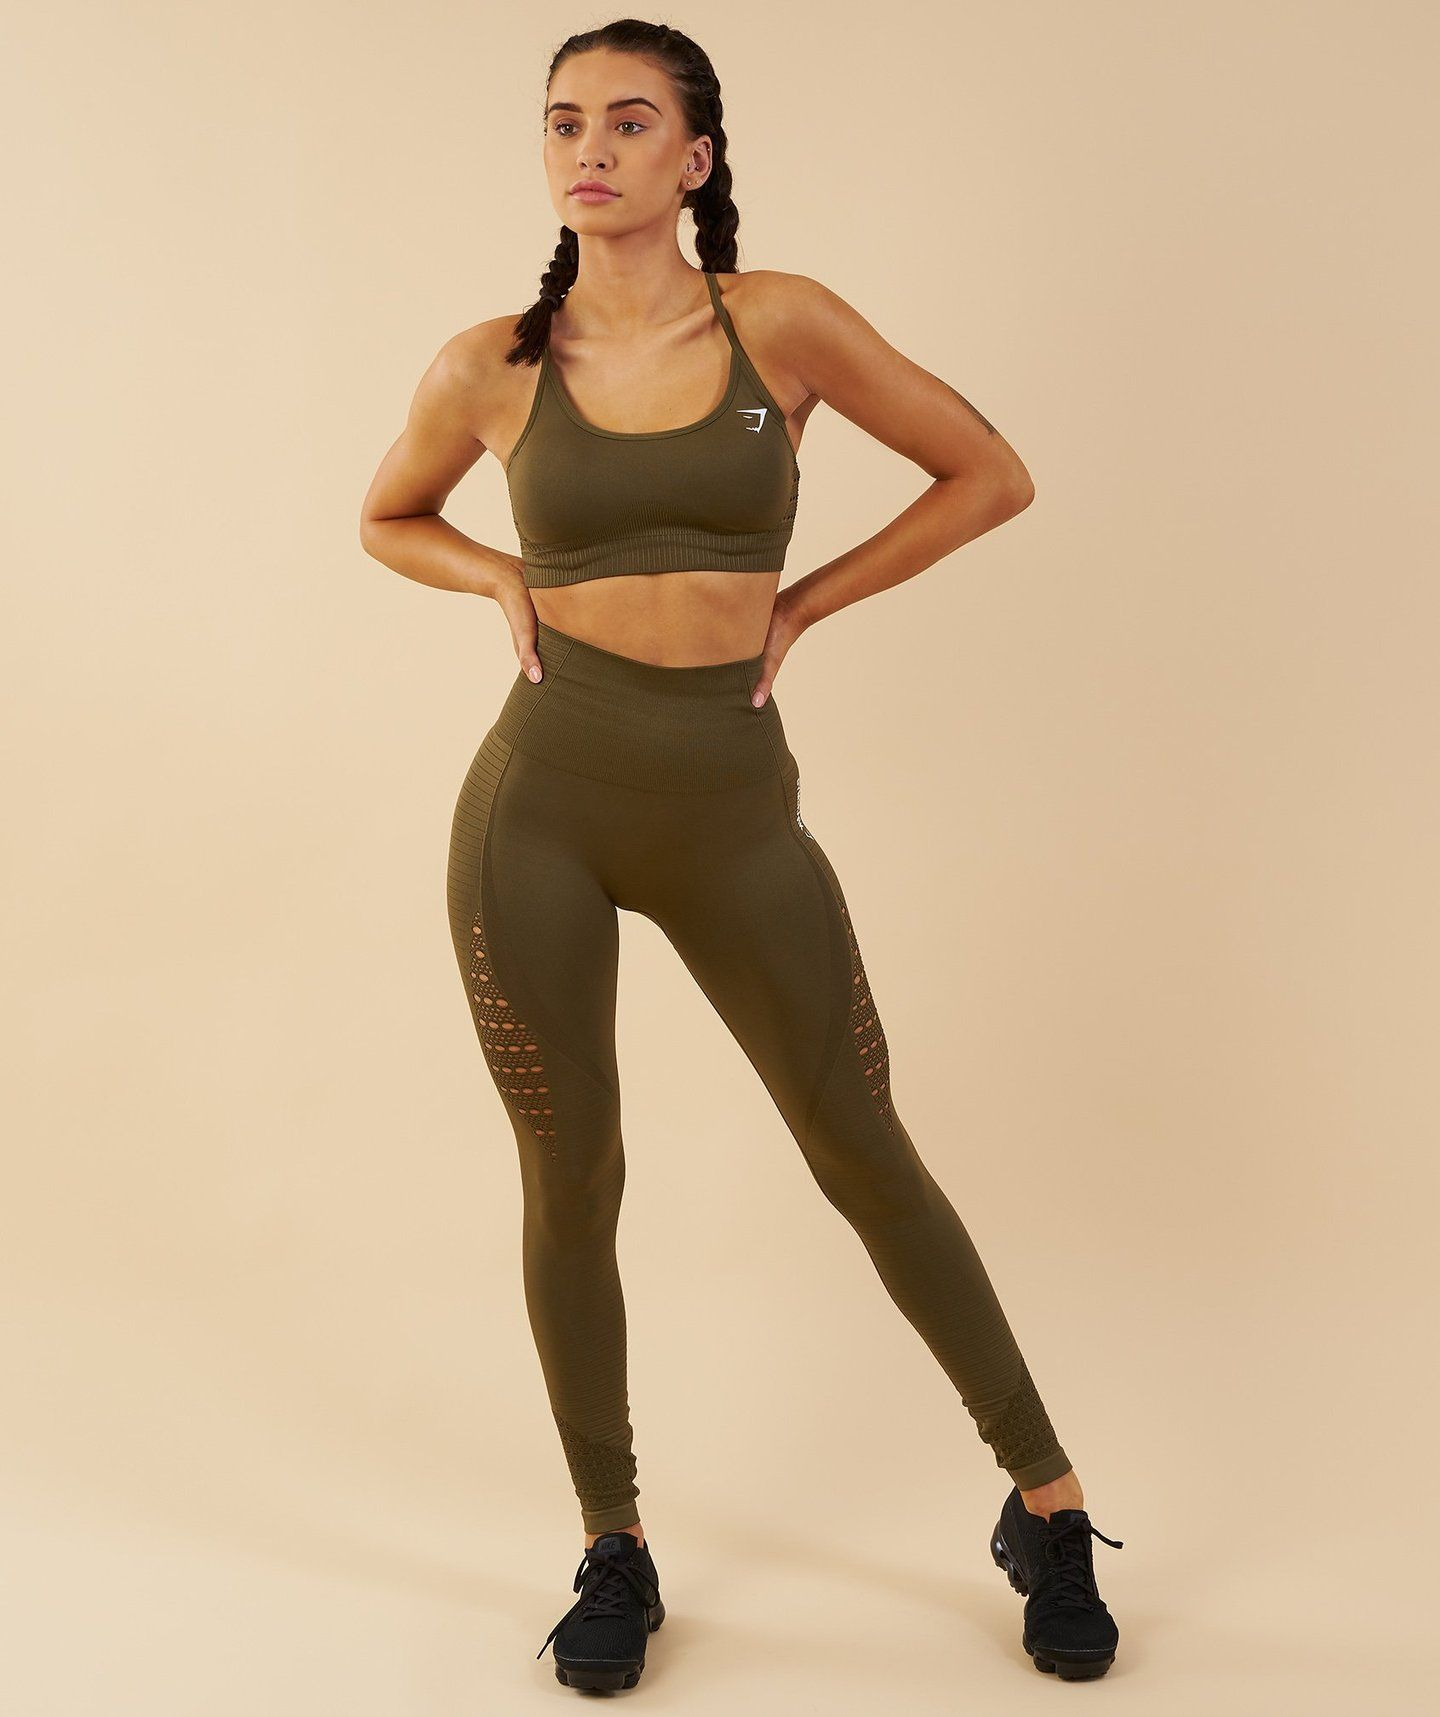 00fdba83e8408 Gymshark Seamless Energy High Waisted Leggings - Khaki 4